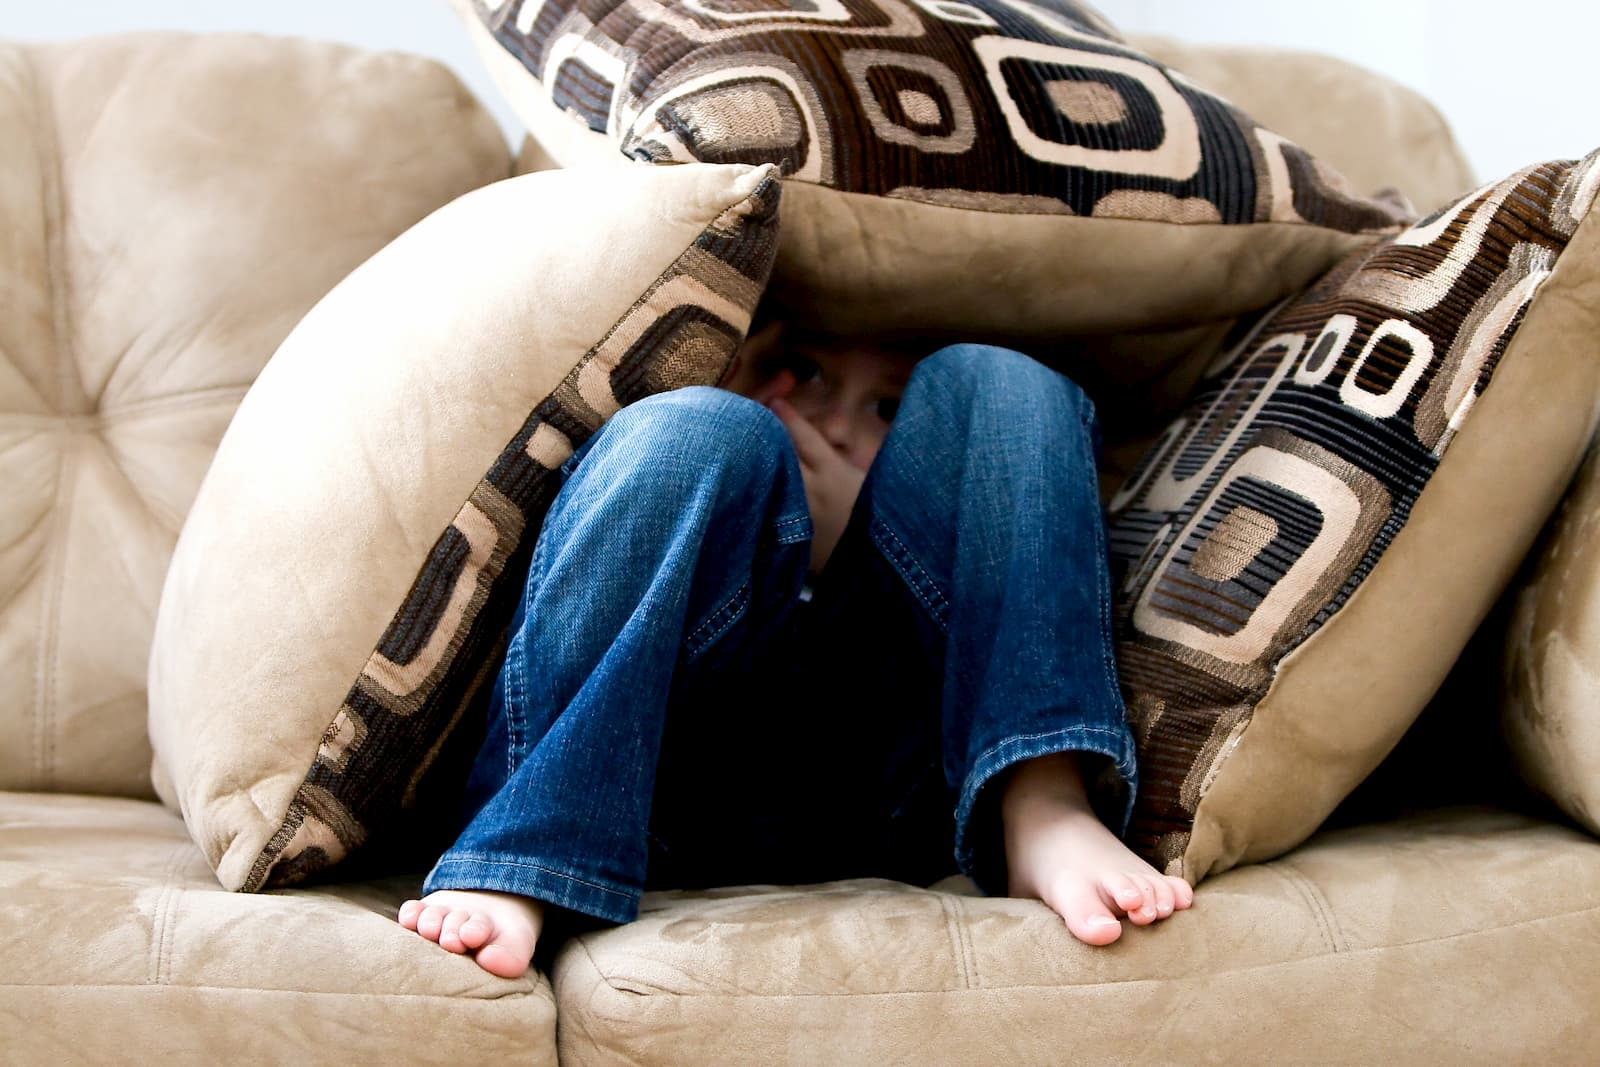 A boy peeks out from his hiding place made of cushions